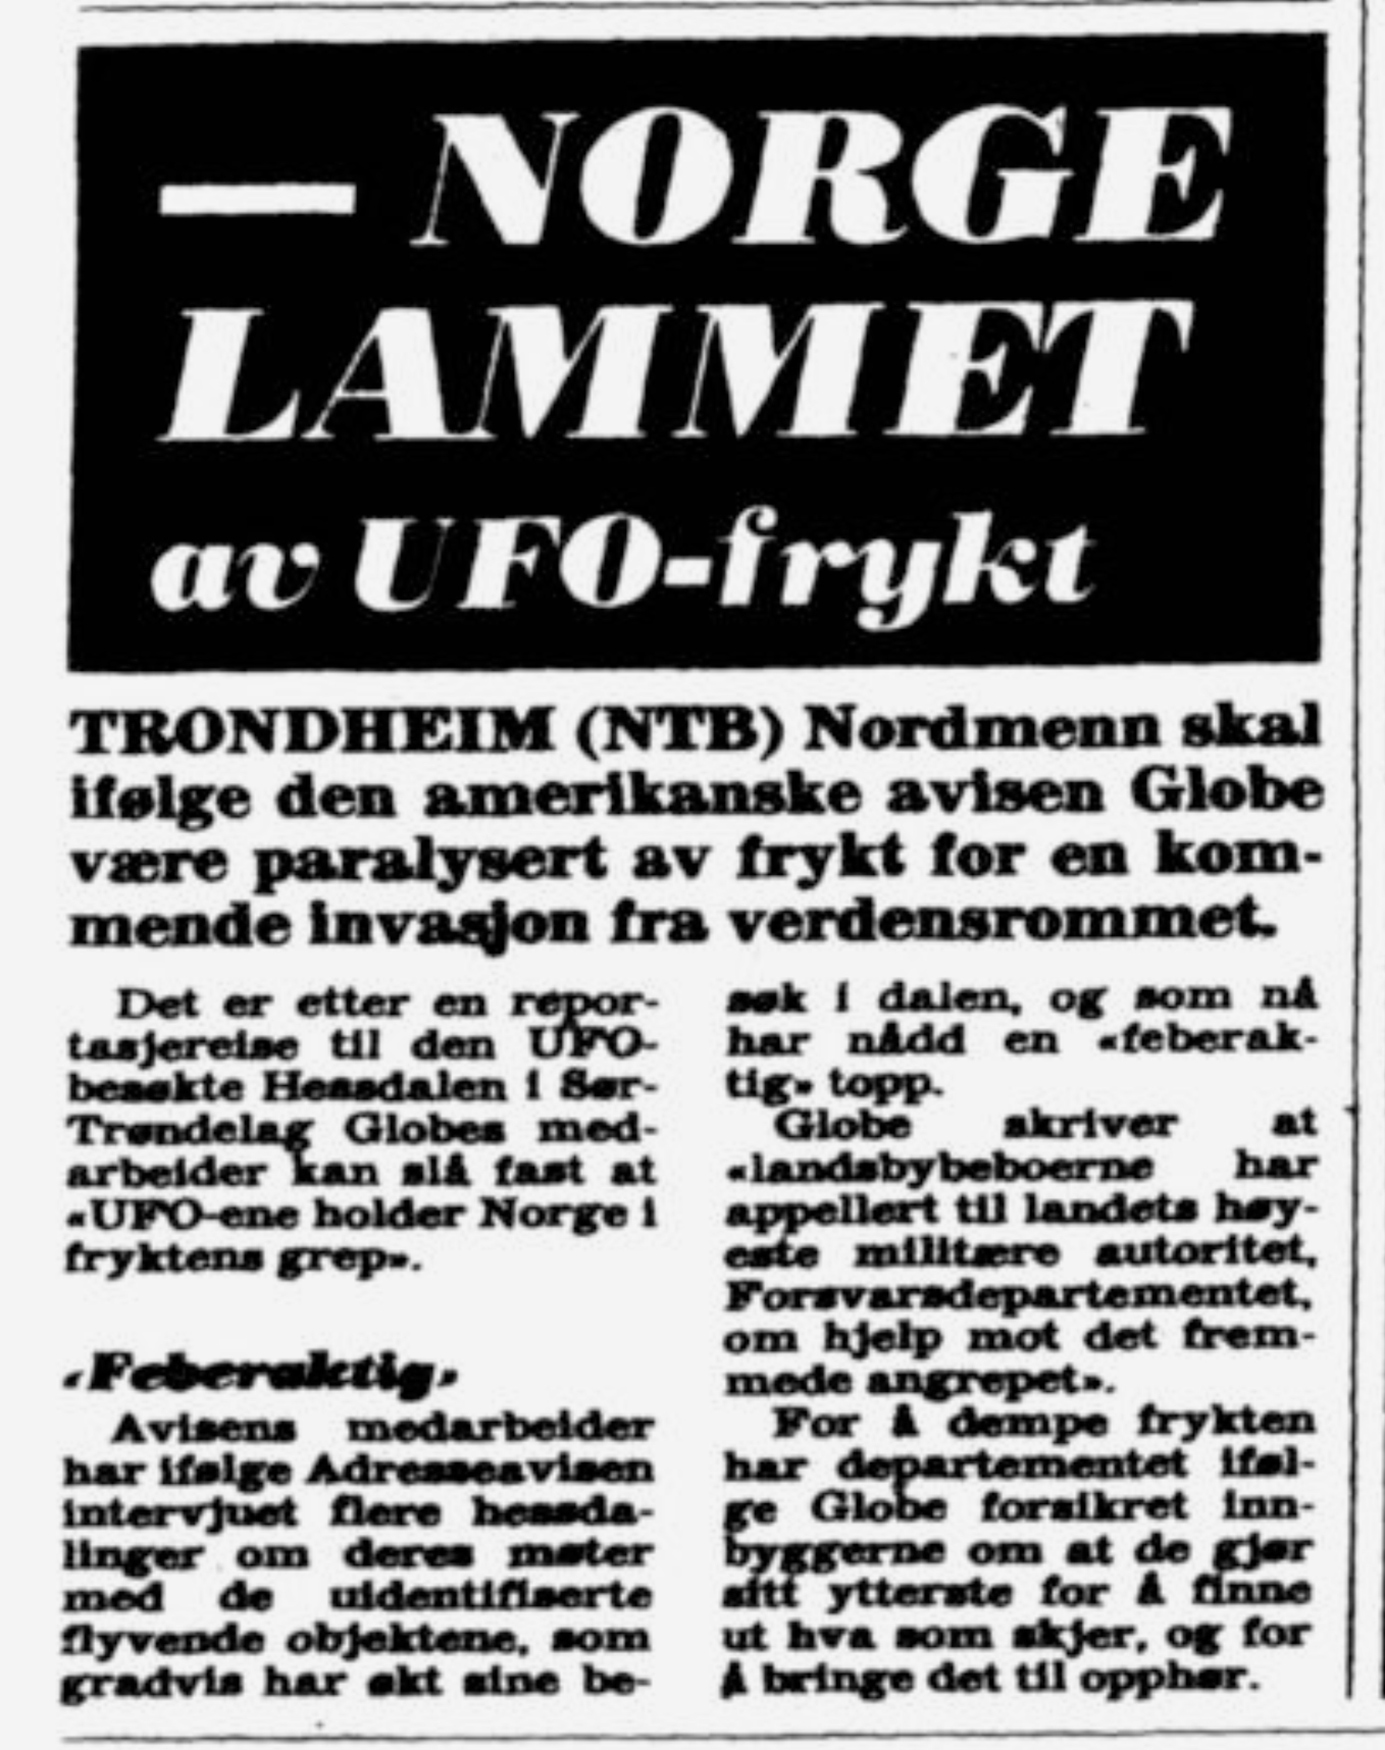 Clipping from VG (Verdens Gang) newspaper, March 22, 1983 which reads,  NORWAY PARALYZED by UFO Fears